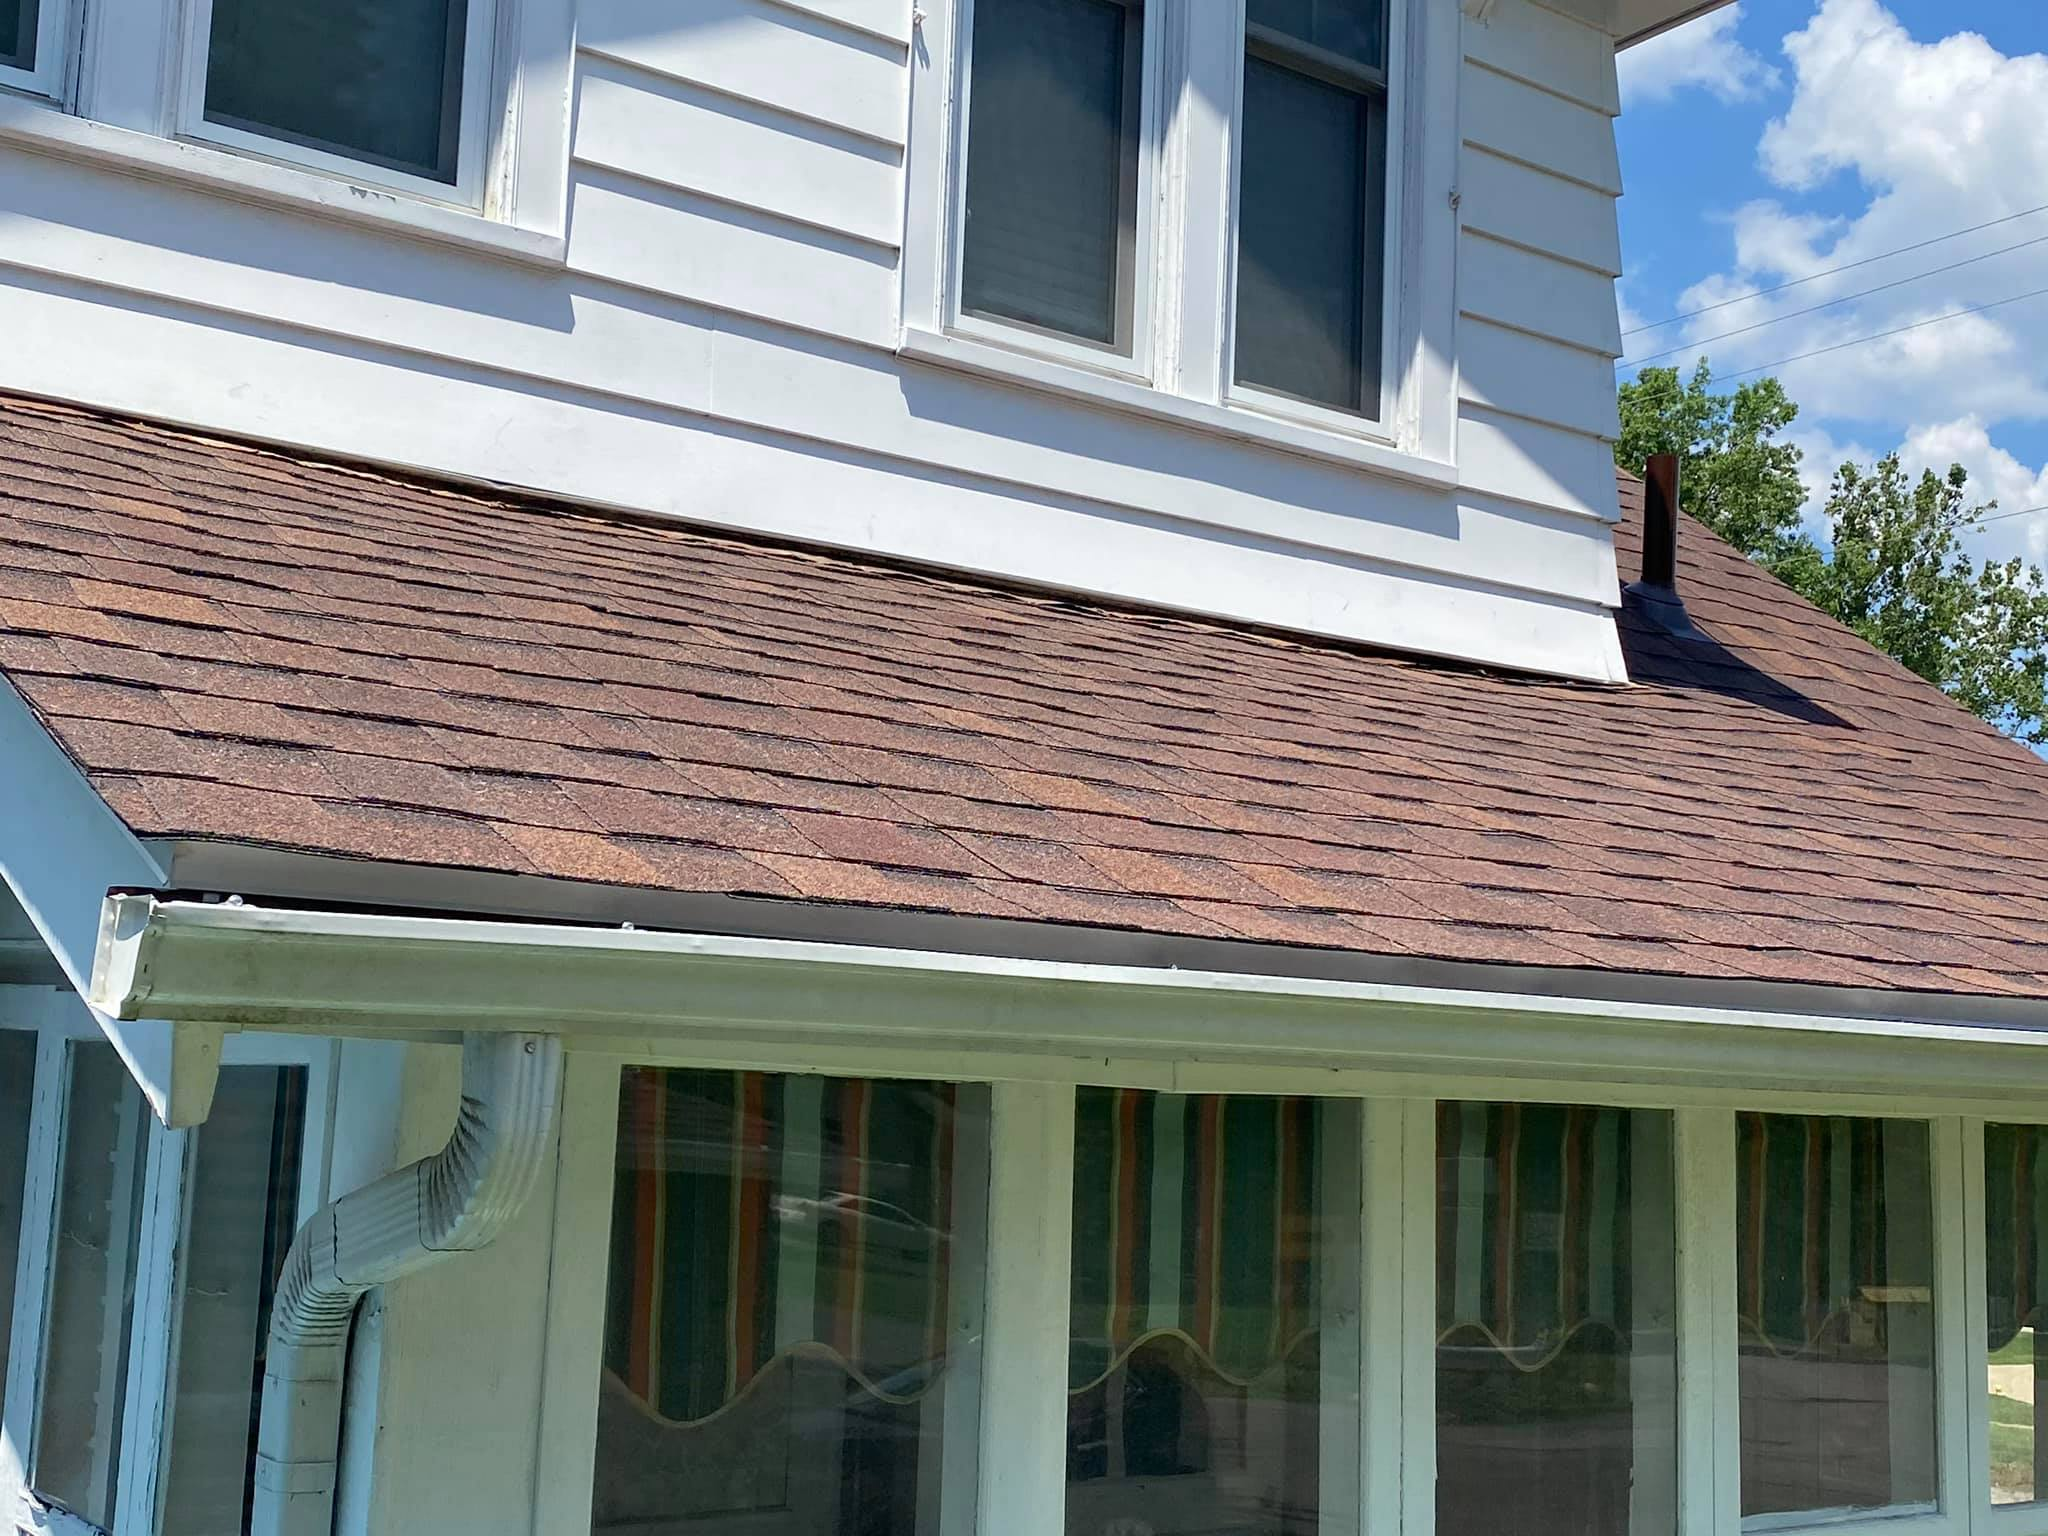 see-how-our-roofing-contactor-can-help-you